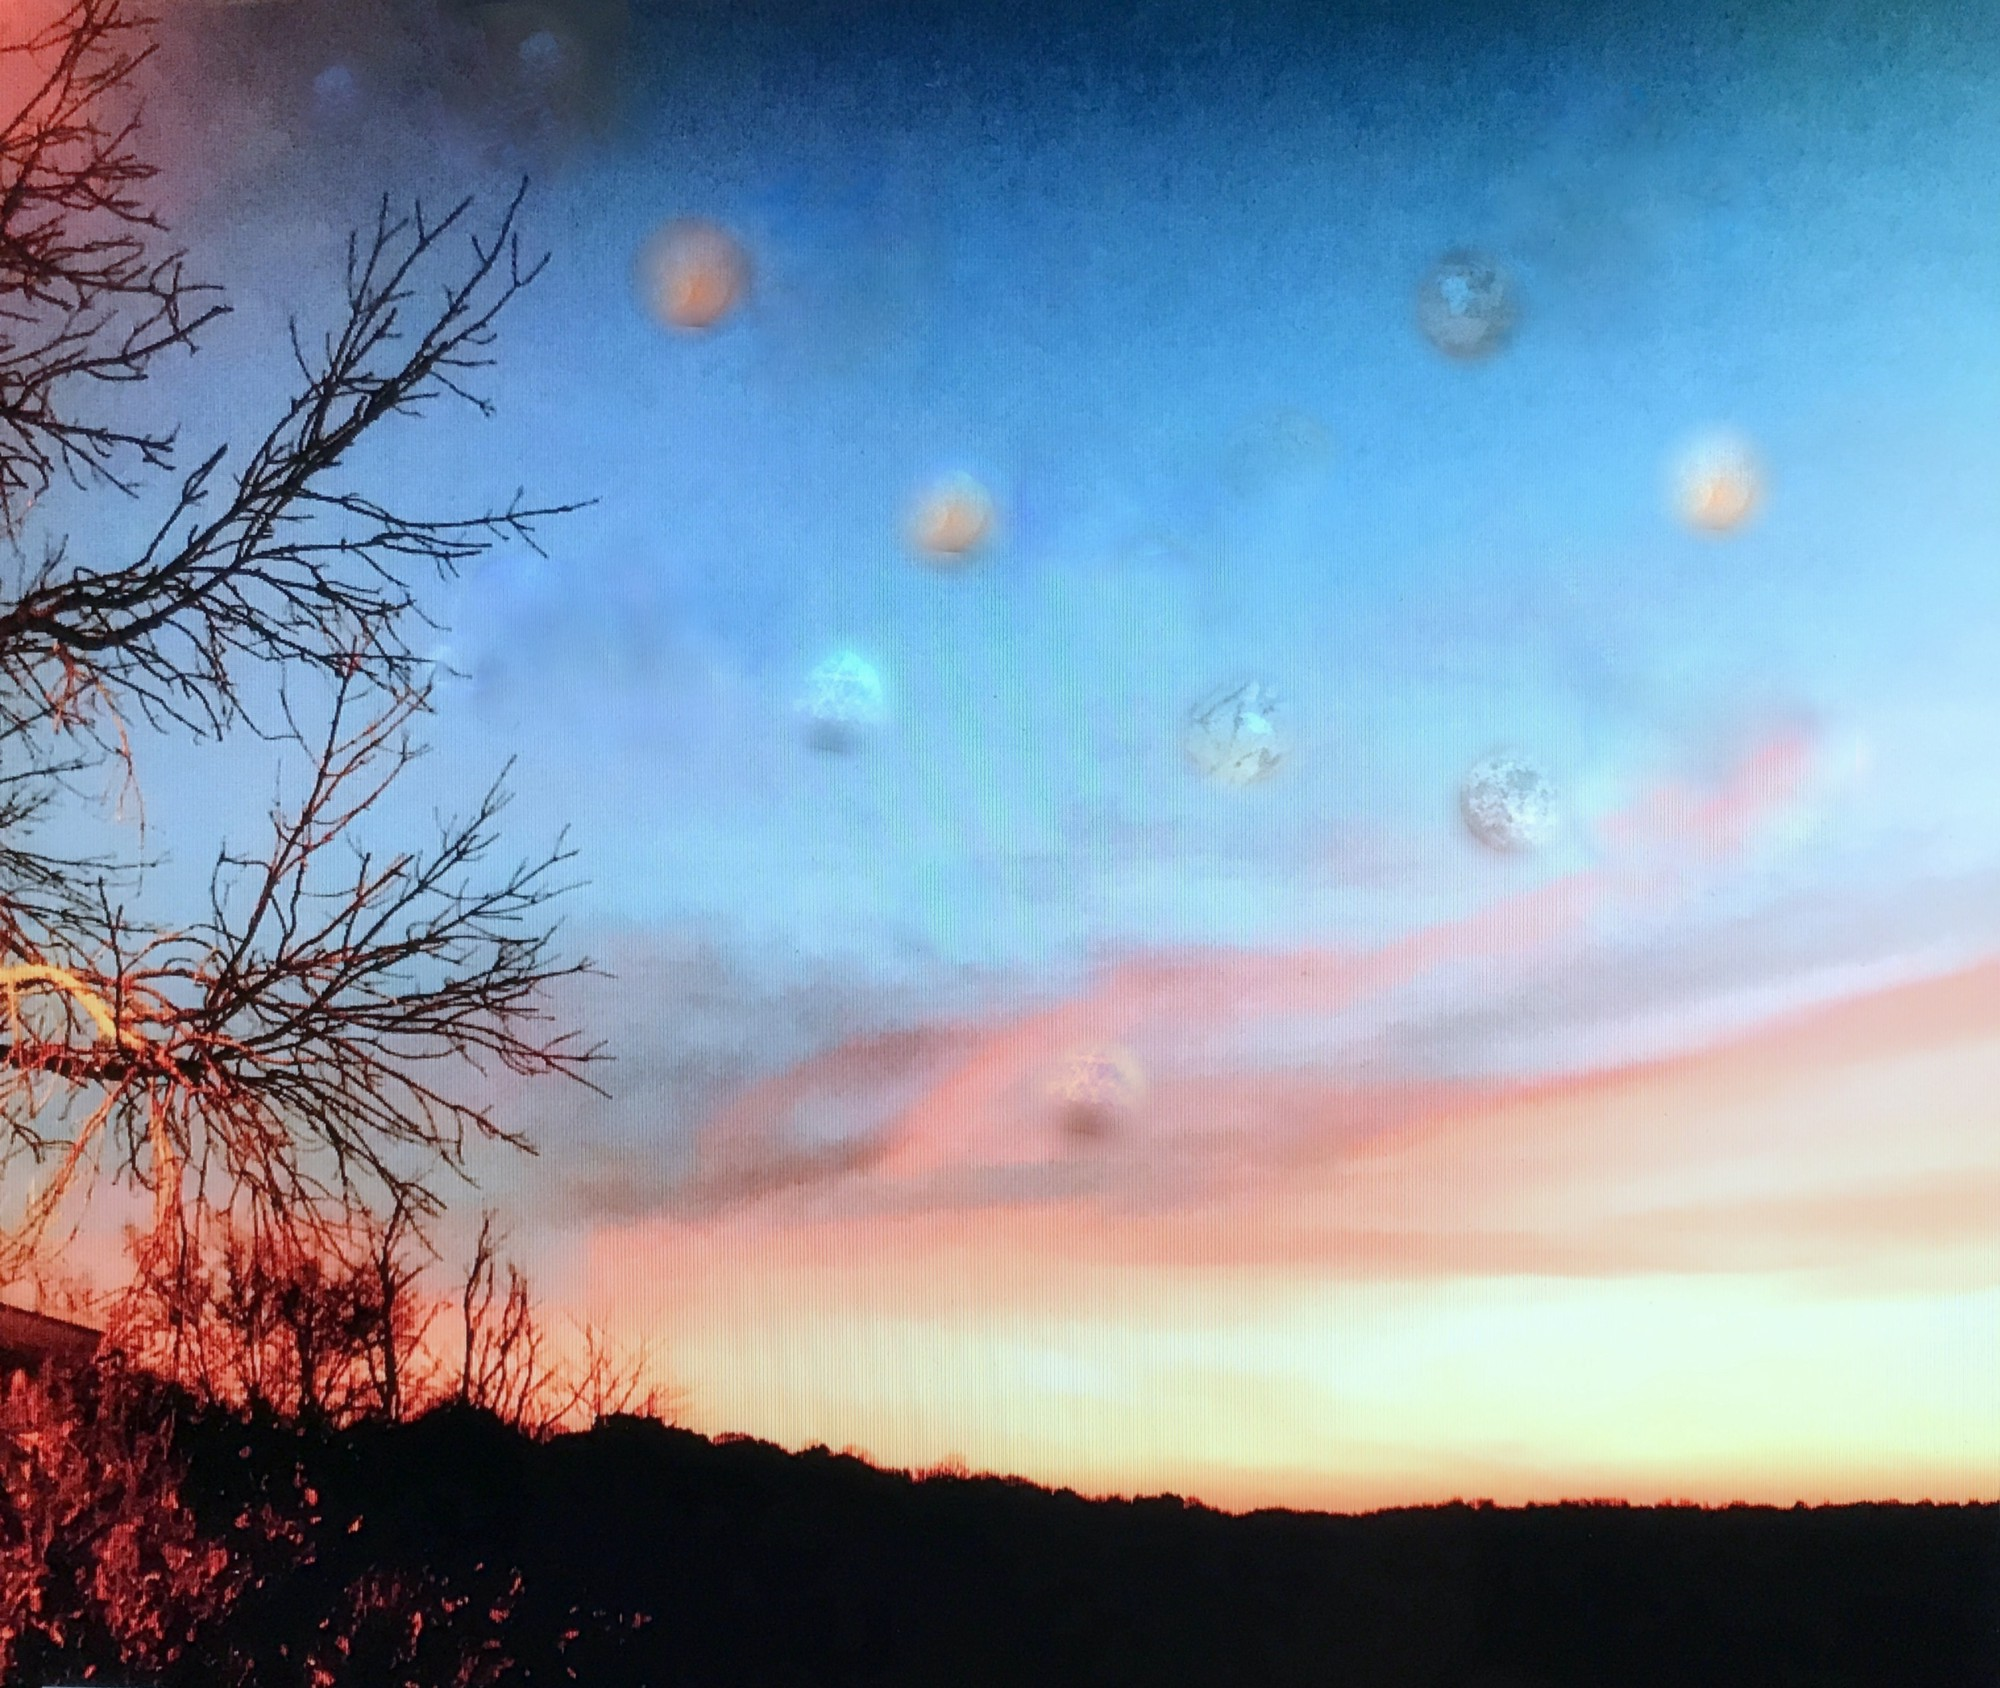 Photograph of a sunset next to a some skeletal tree branches the dawning sky is dotted with many planets of different sizes and colors